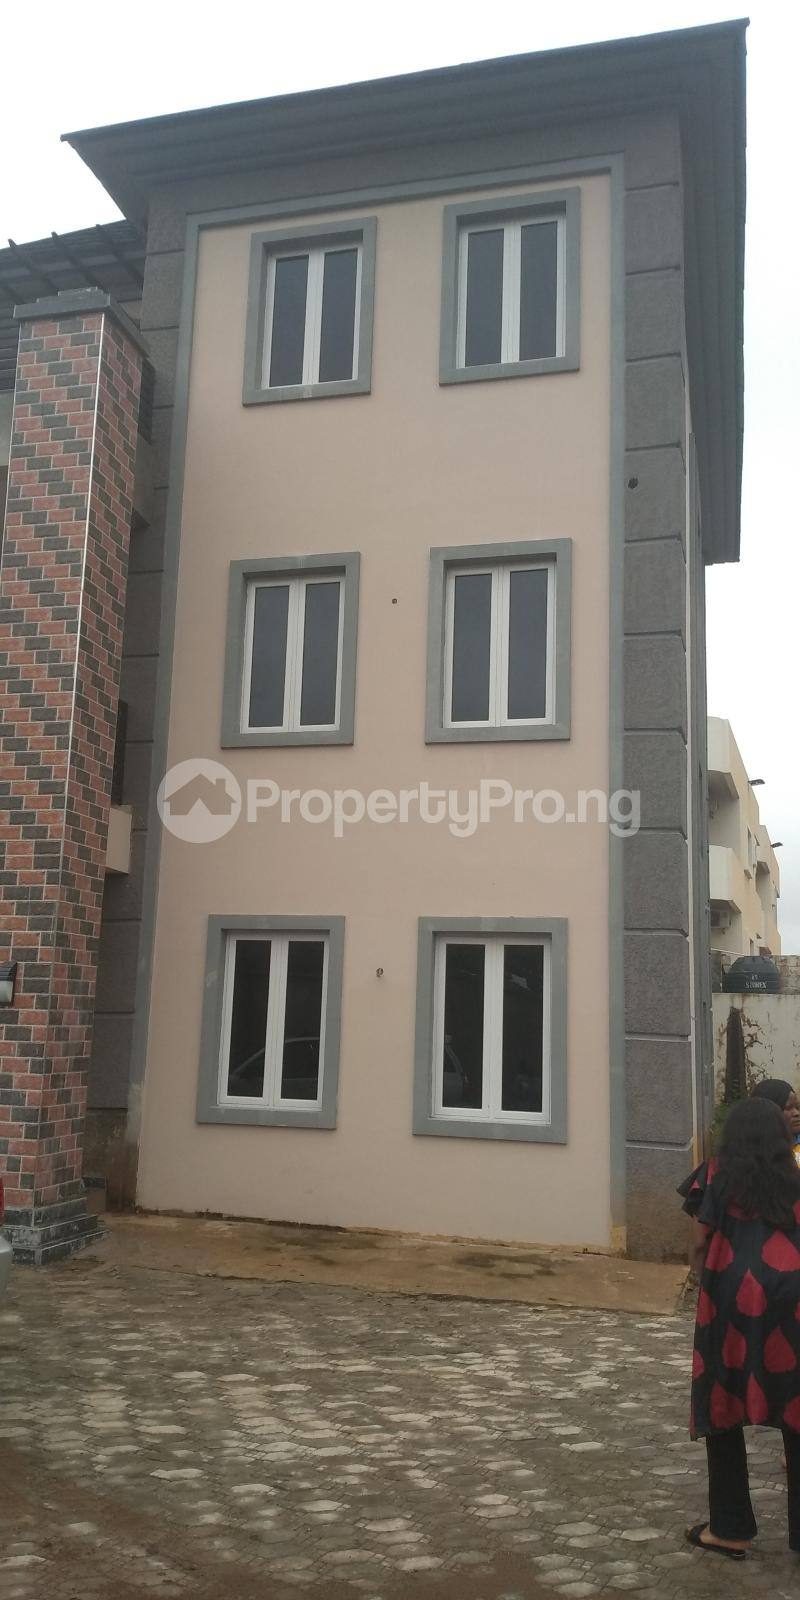 5 bedroom Flat / Apartment for sale Life Camp Abuja - 16